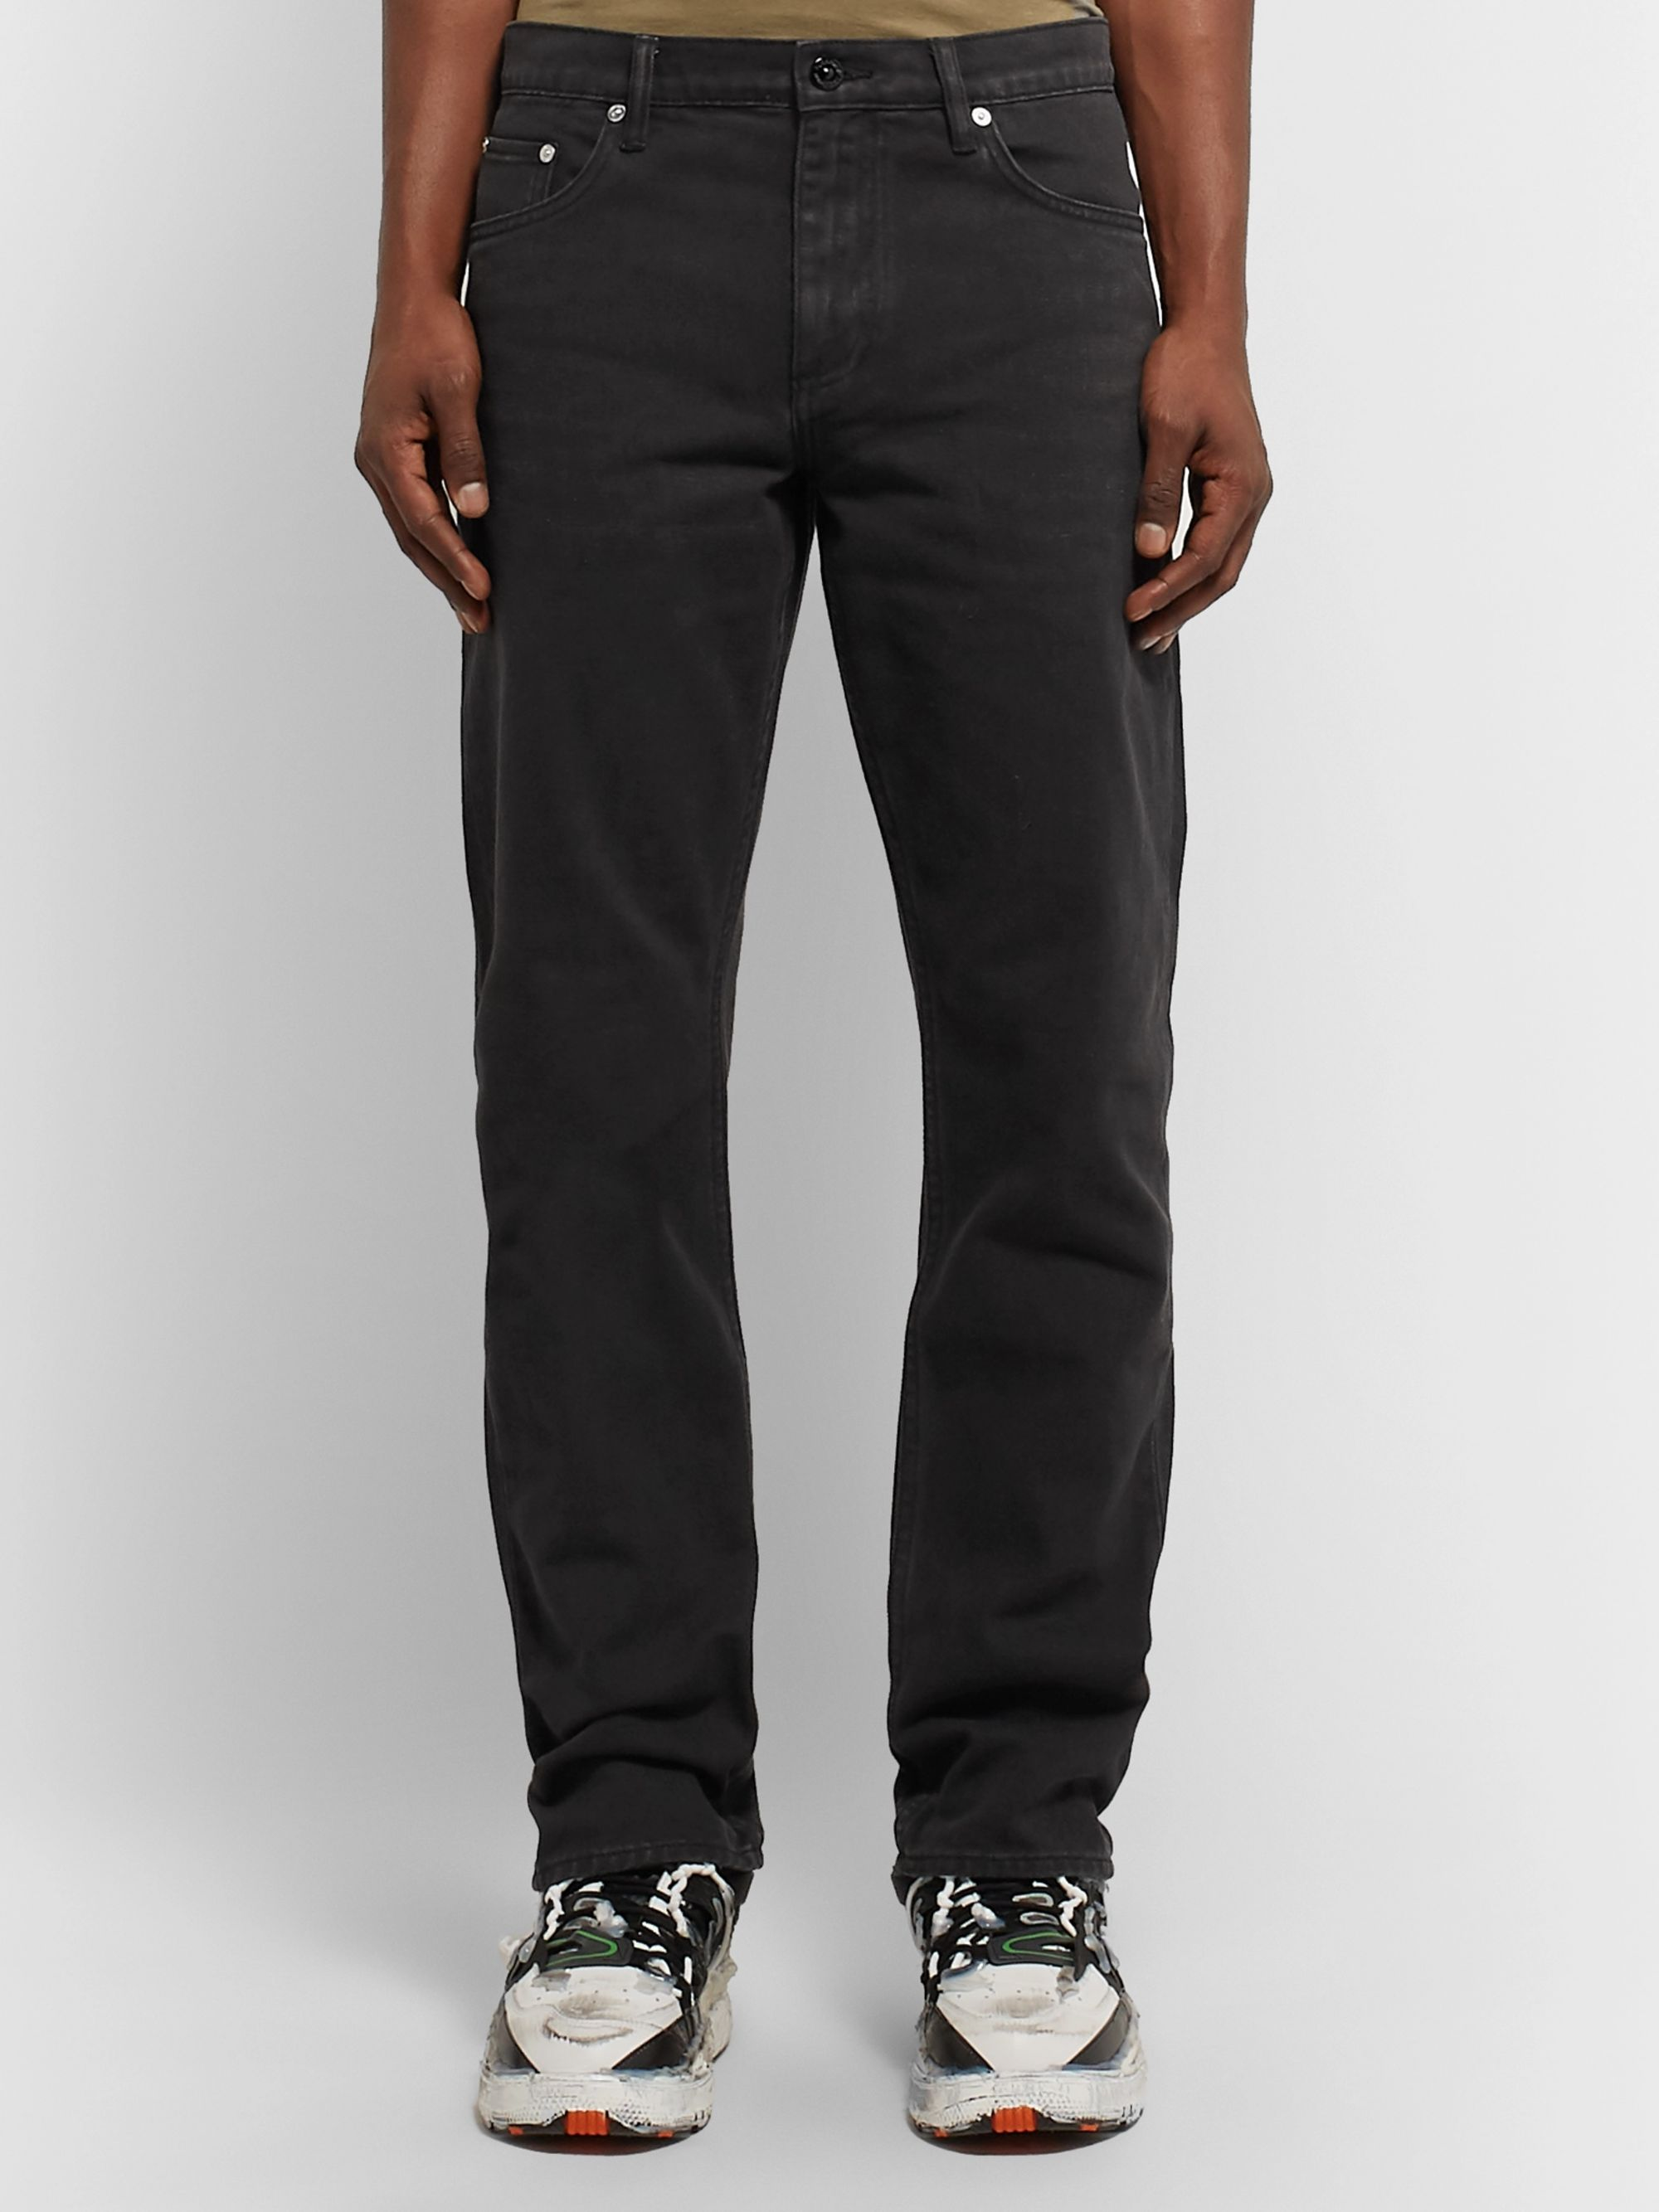 Burberry Denim Jeans